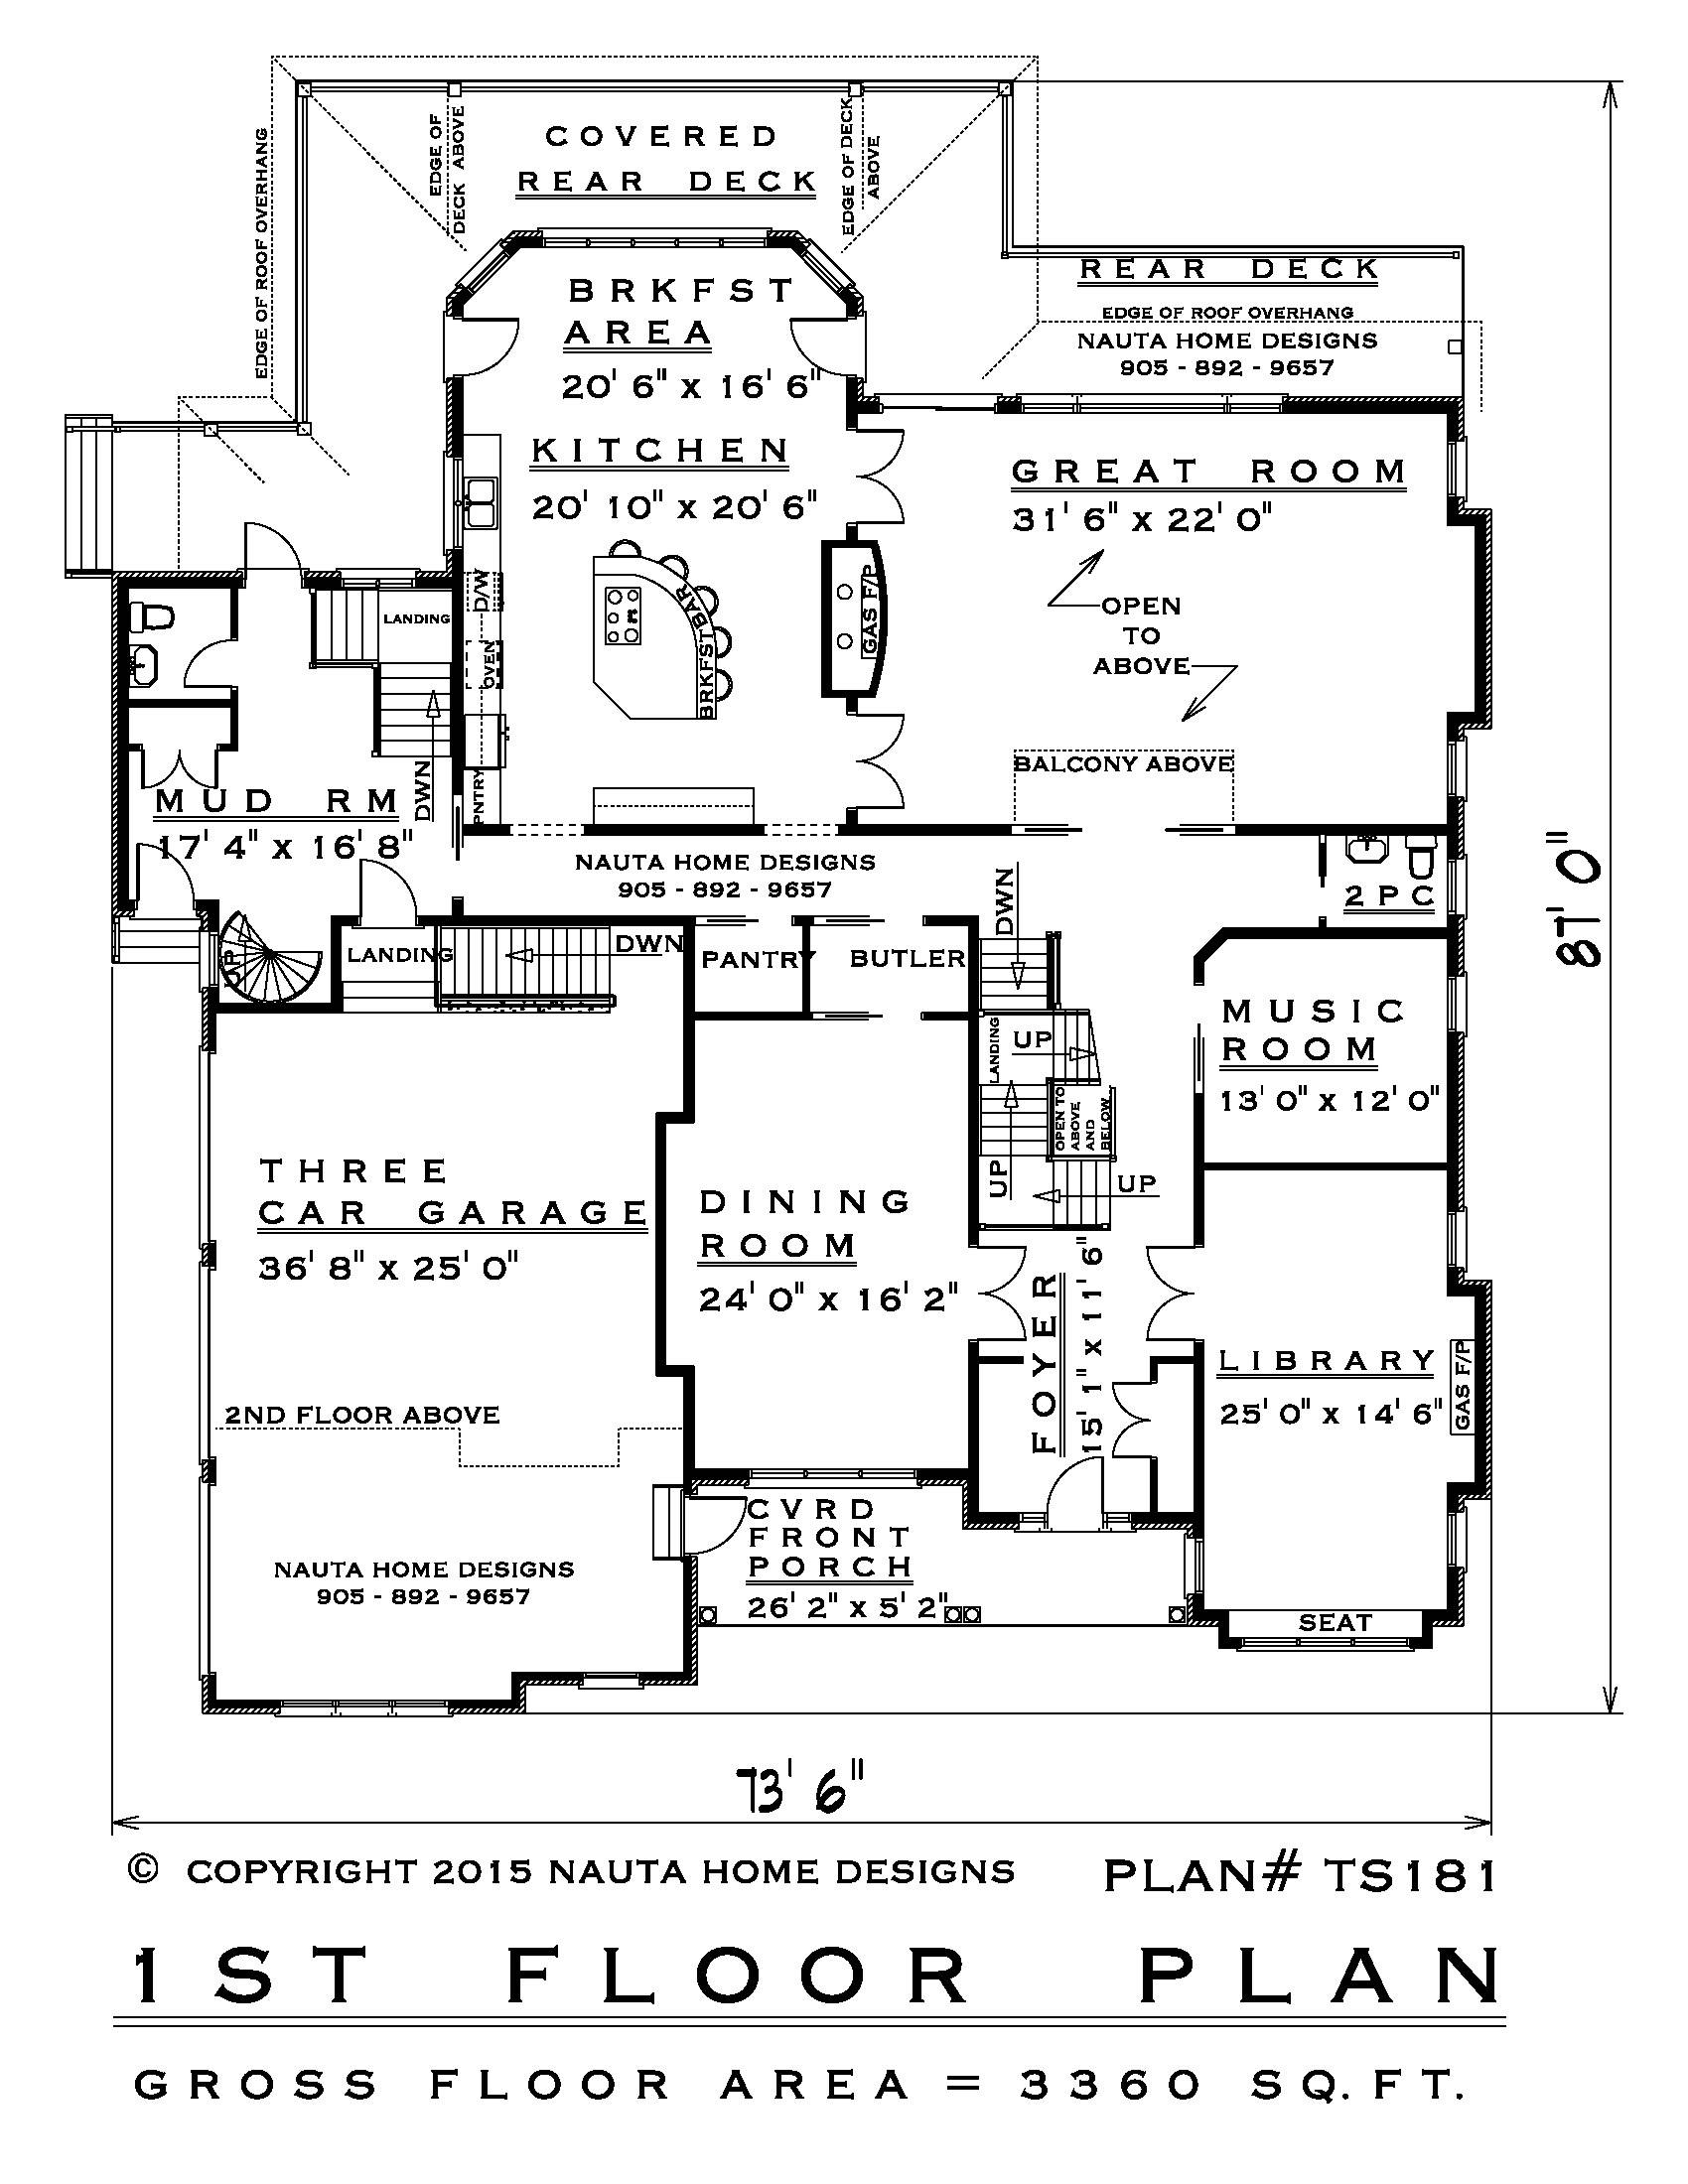 5 Bedroom Two Storey House Plan Ts181